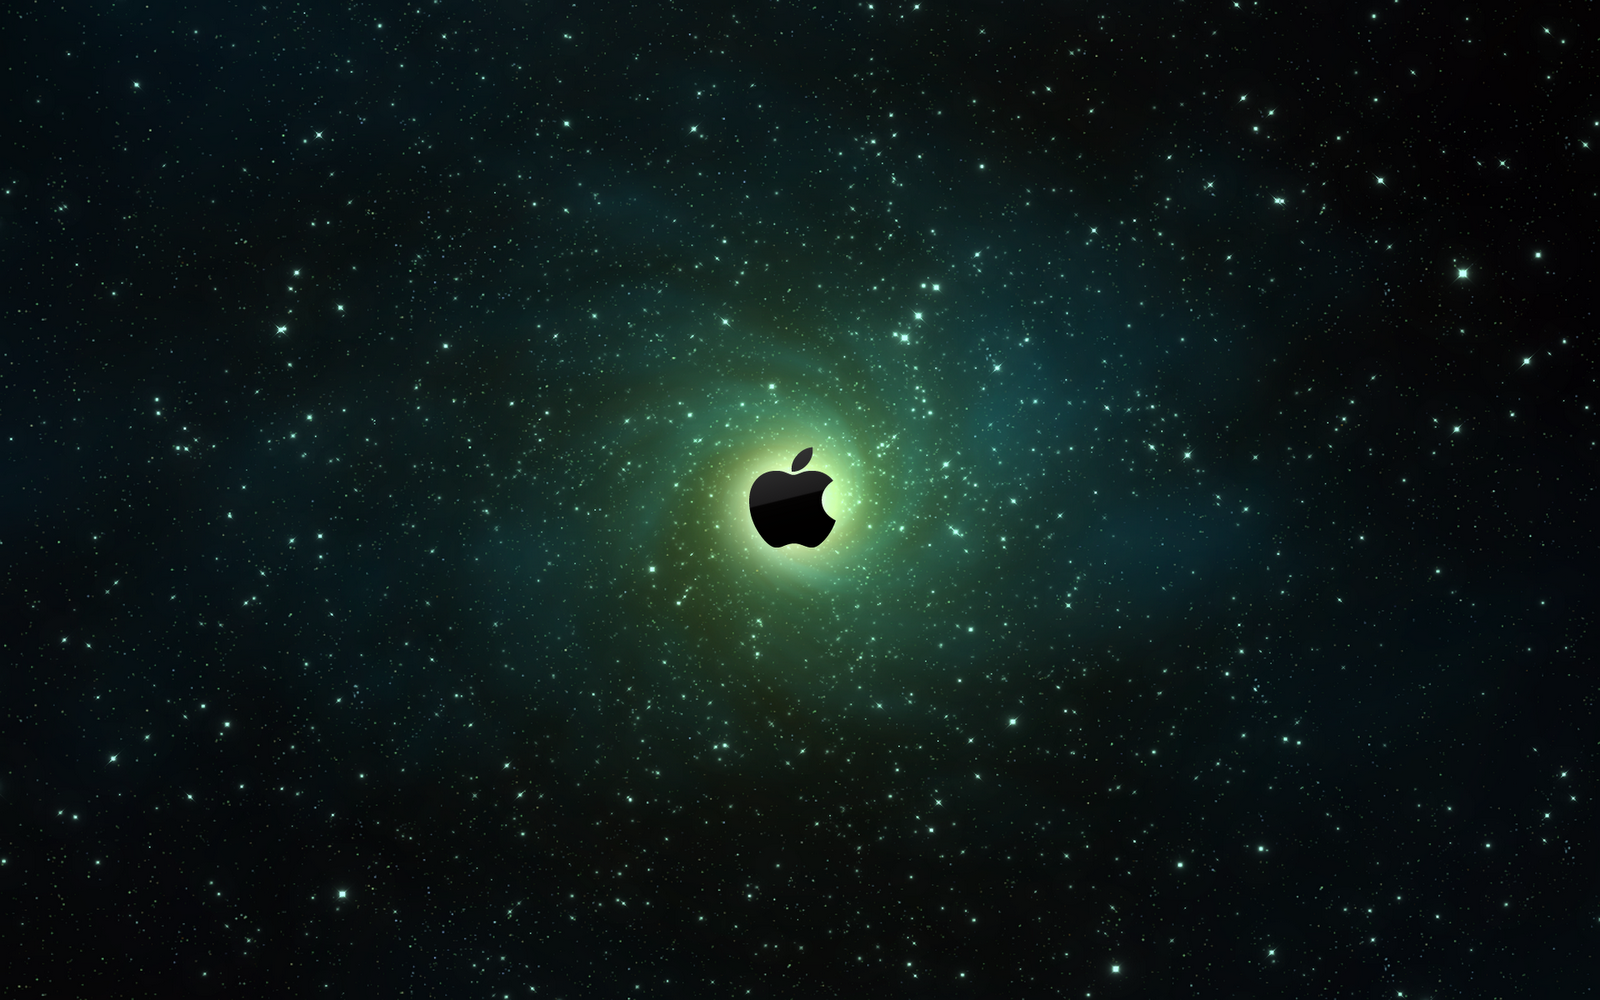 Cool Hd Wallpaper Macbook Air For Your W 958303 Png